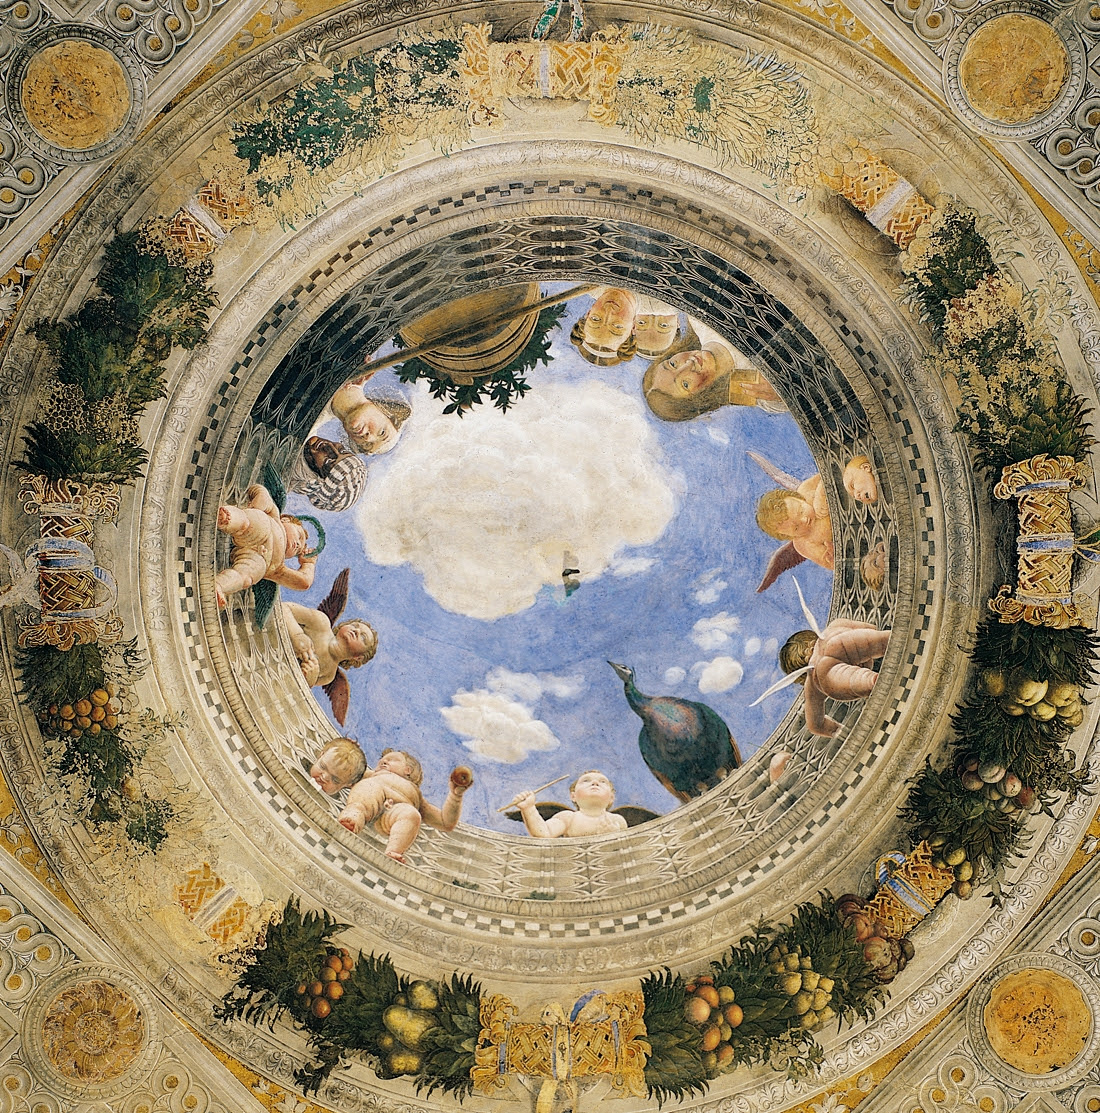 http://upload.wikimedia.org/wikipedia/commons/4/4a/Mantegna.jpg